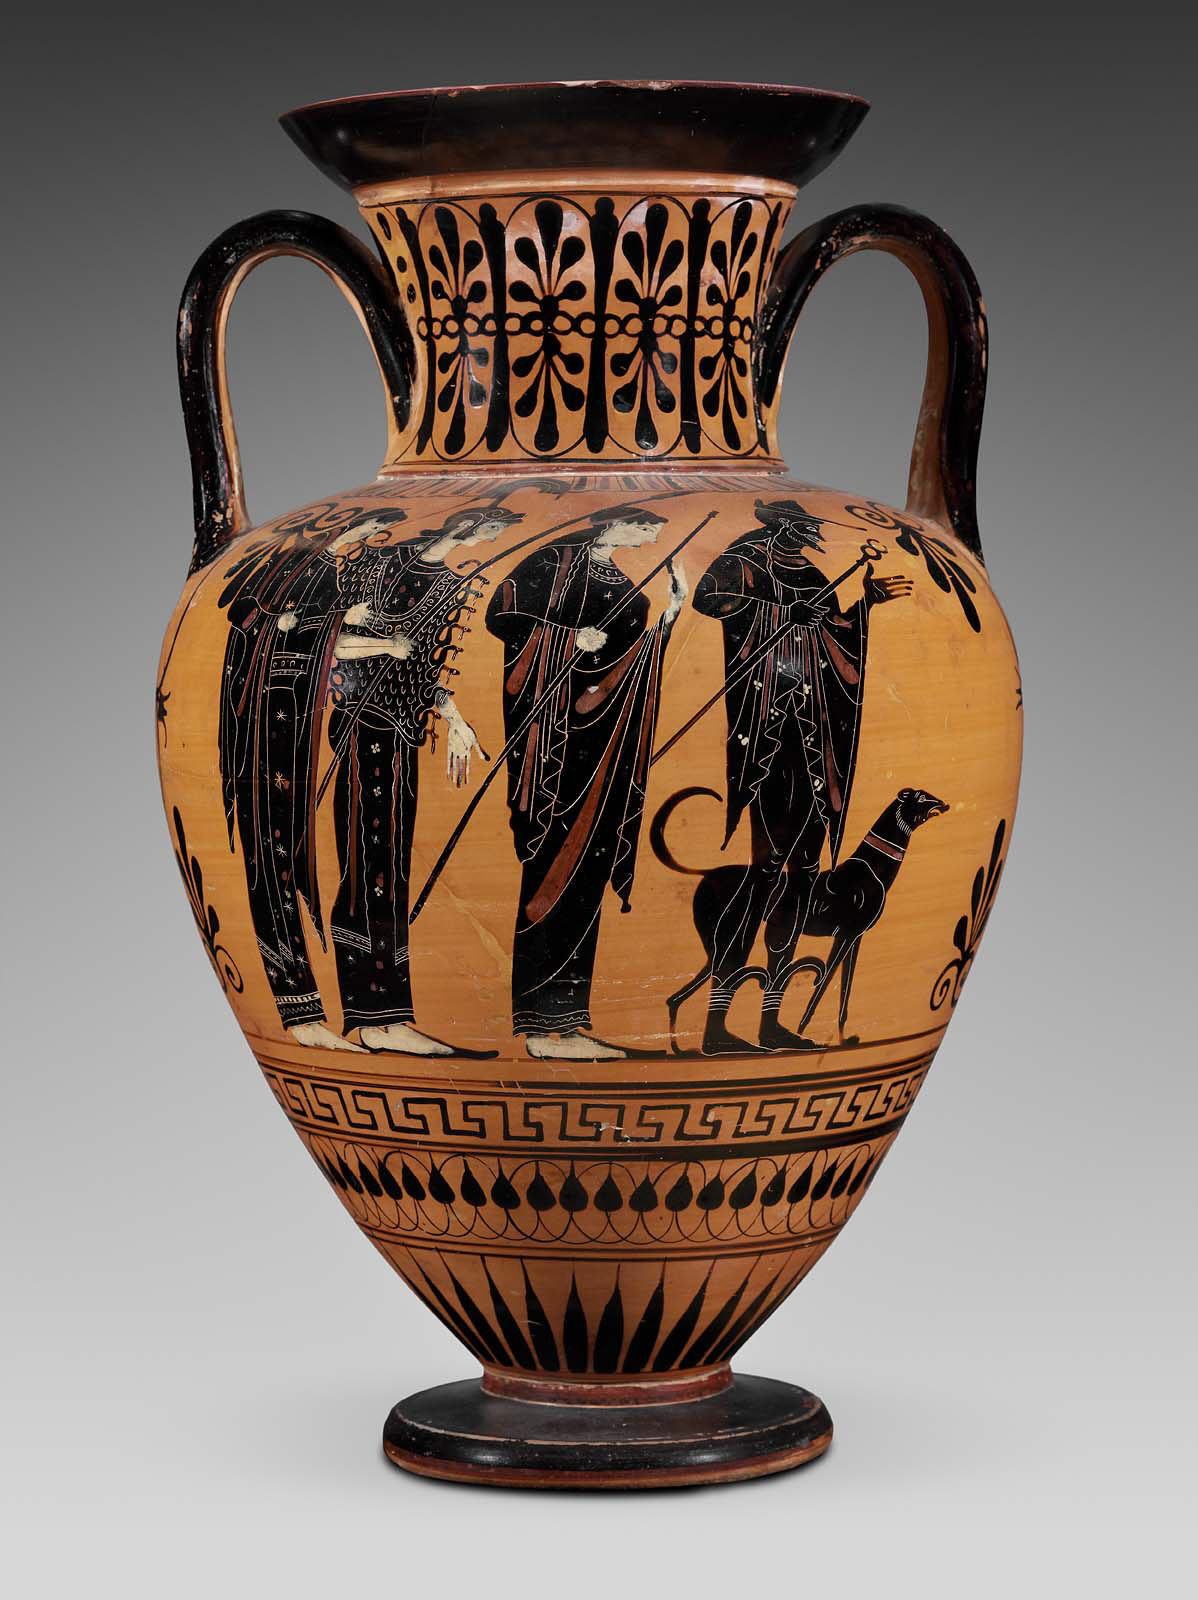 Image result for greek vase paris